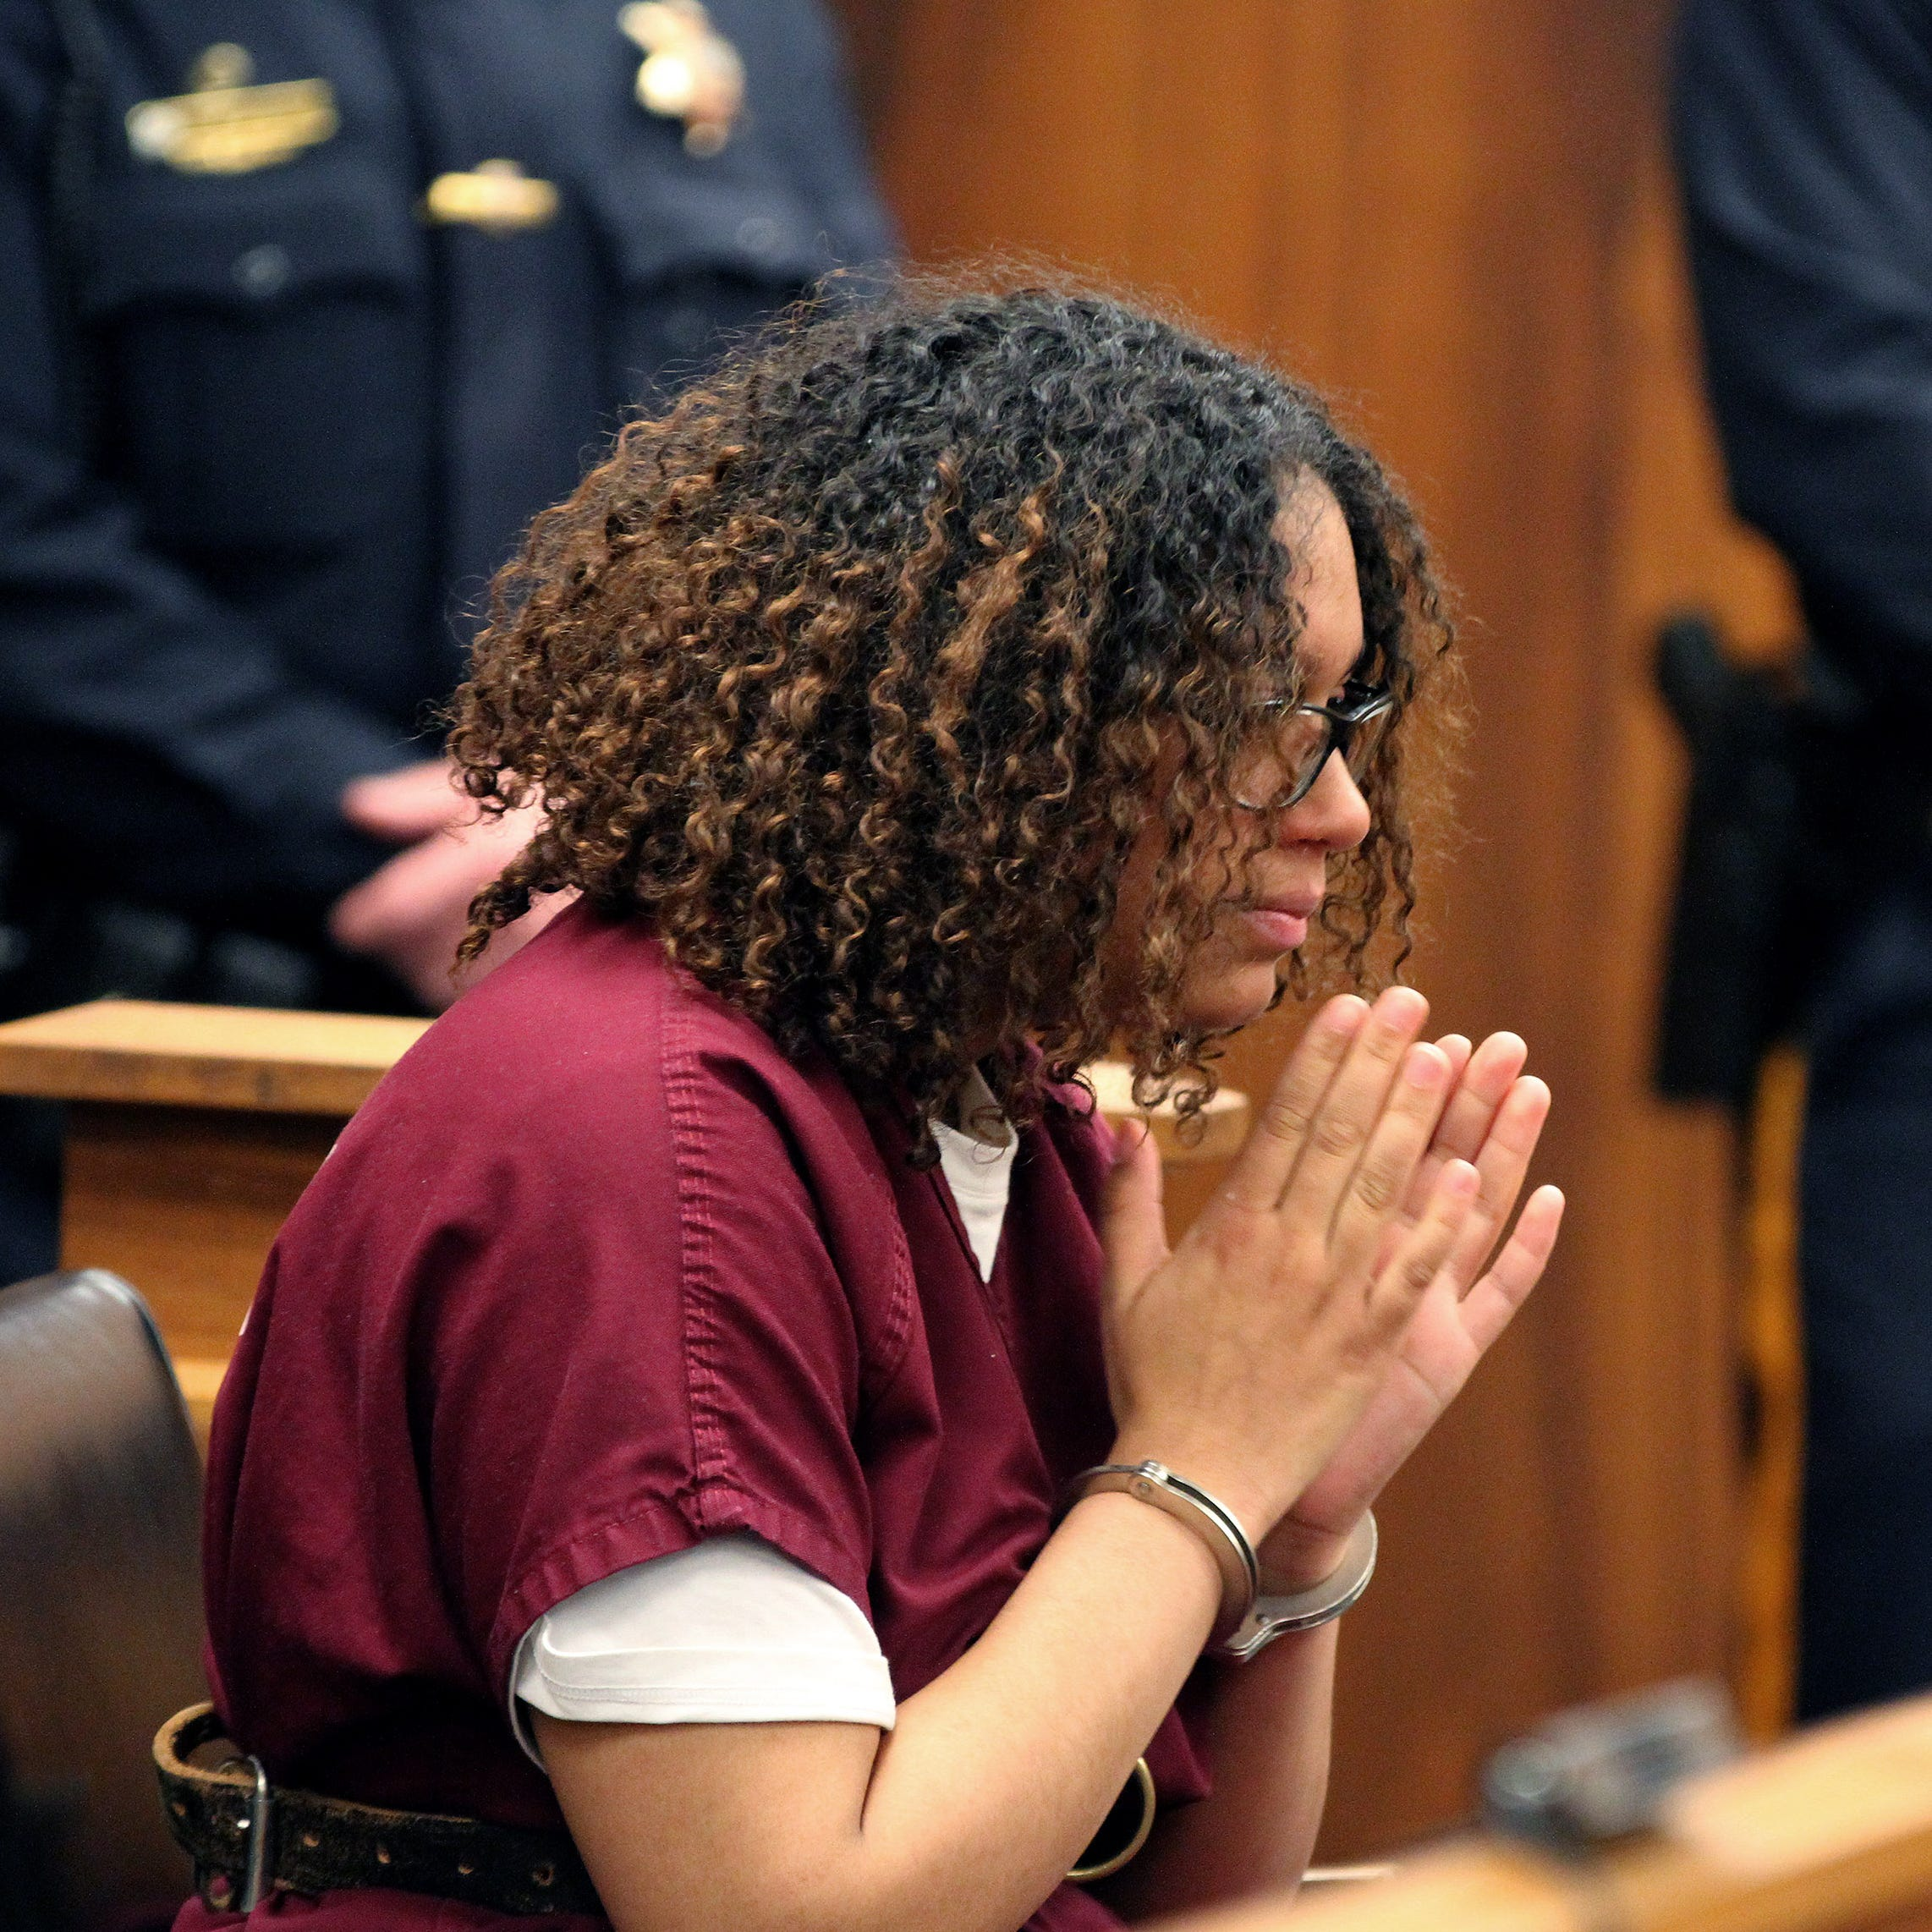 Neptune baby killed: Mom denies murder, judge keeps her locked in jail